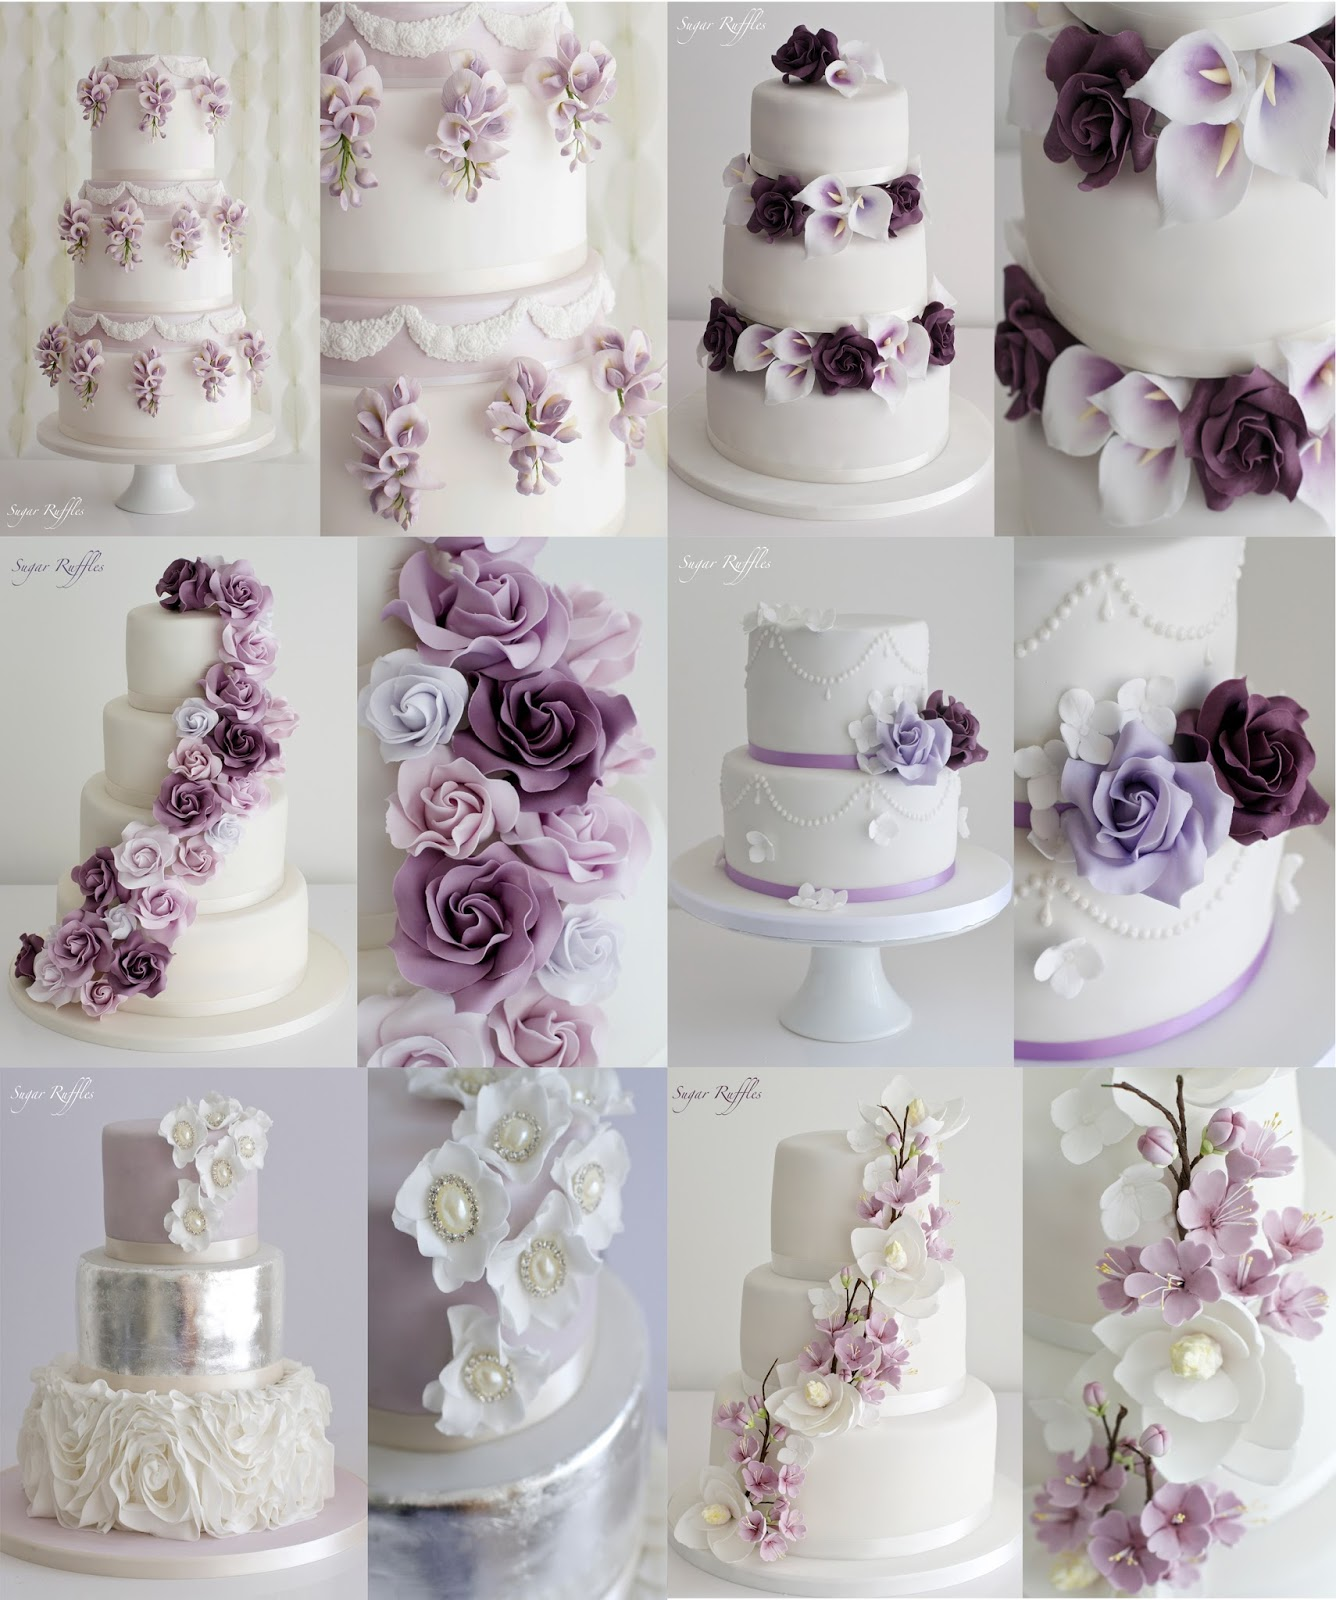 Sugar ruffles highlights 2016 we are proud to have been working with low wood bay in 2016 providing wedding cakes for their inclusive wedding package when you book your wedding package junglespirit Image collections